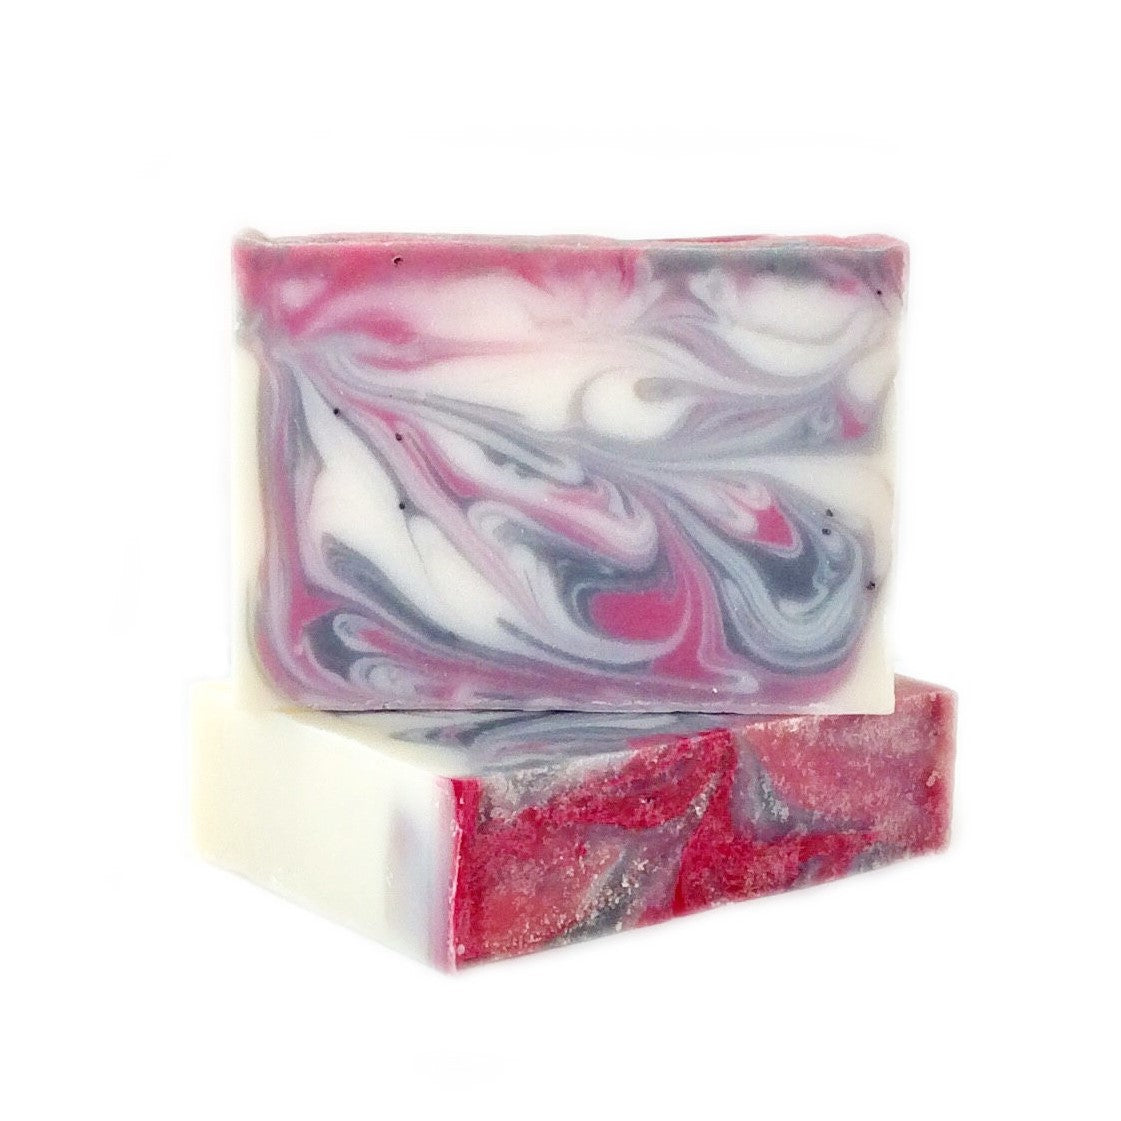 MADISON COUNTY - Carolina Soap Market